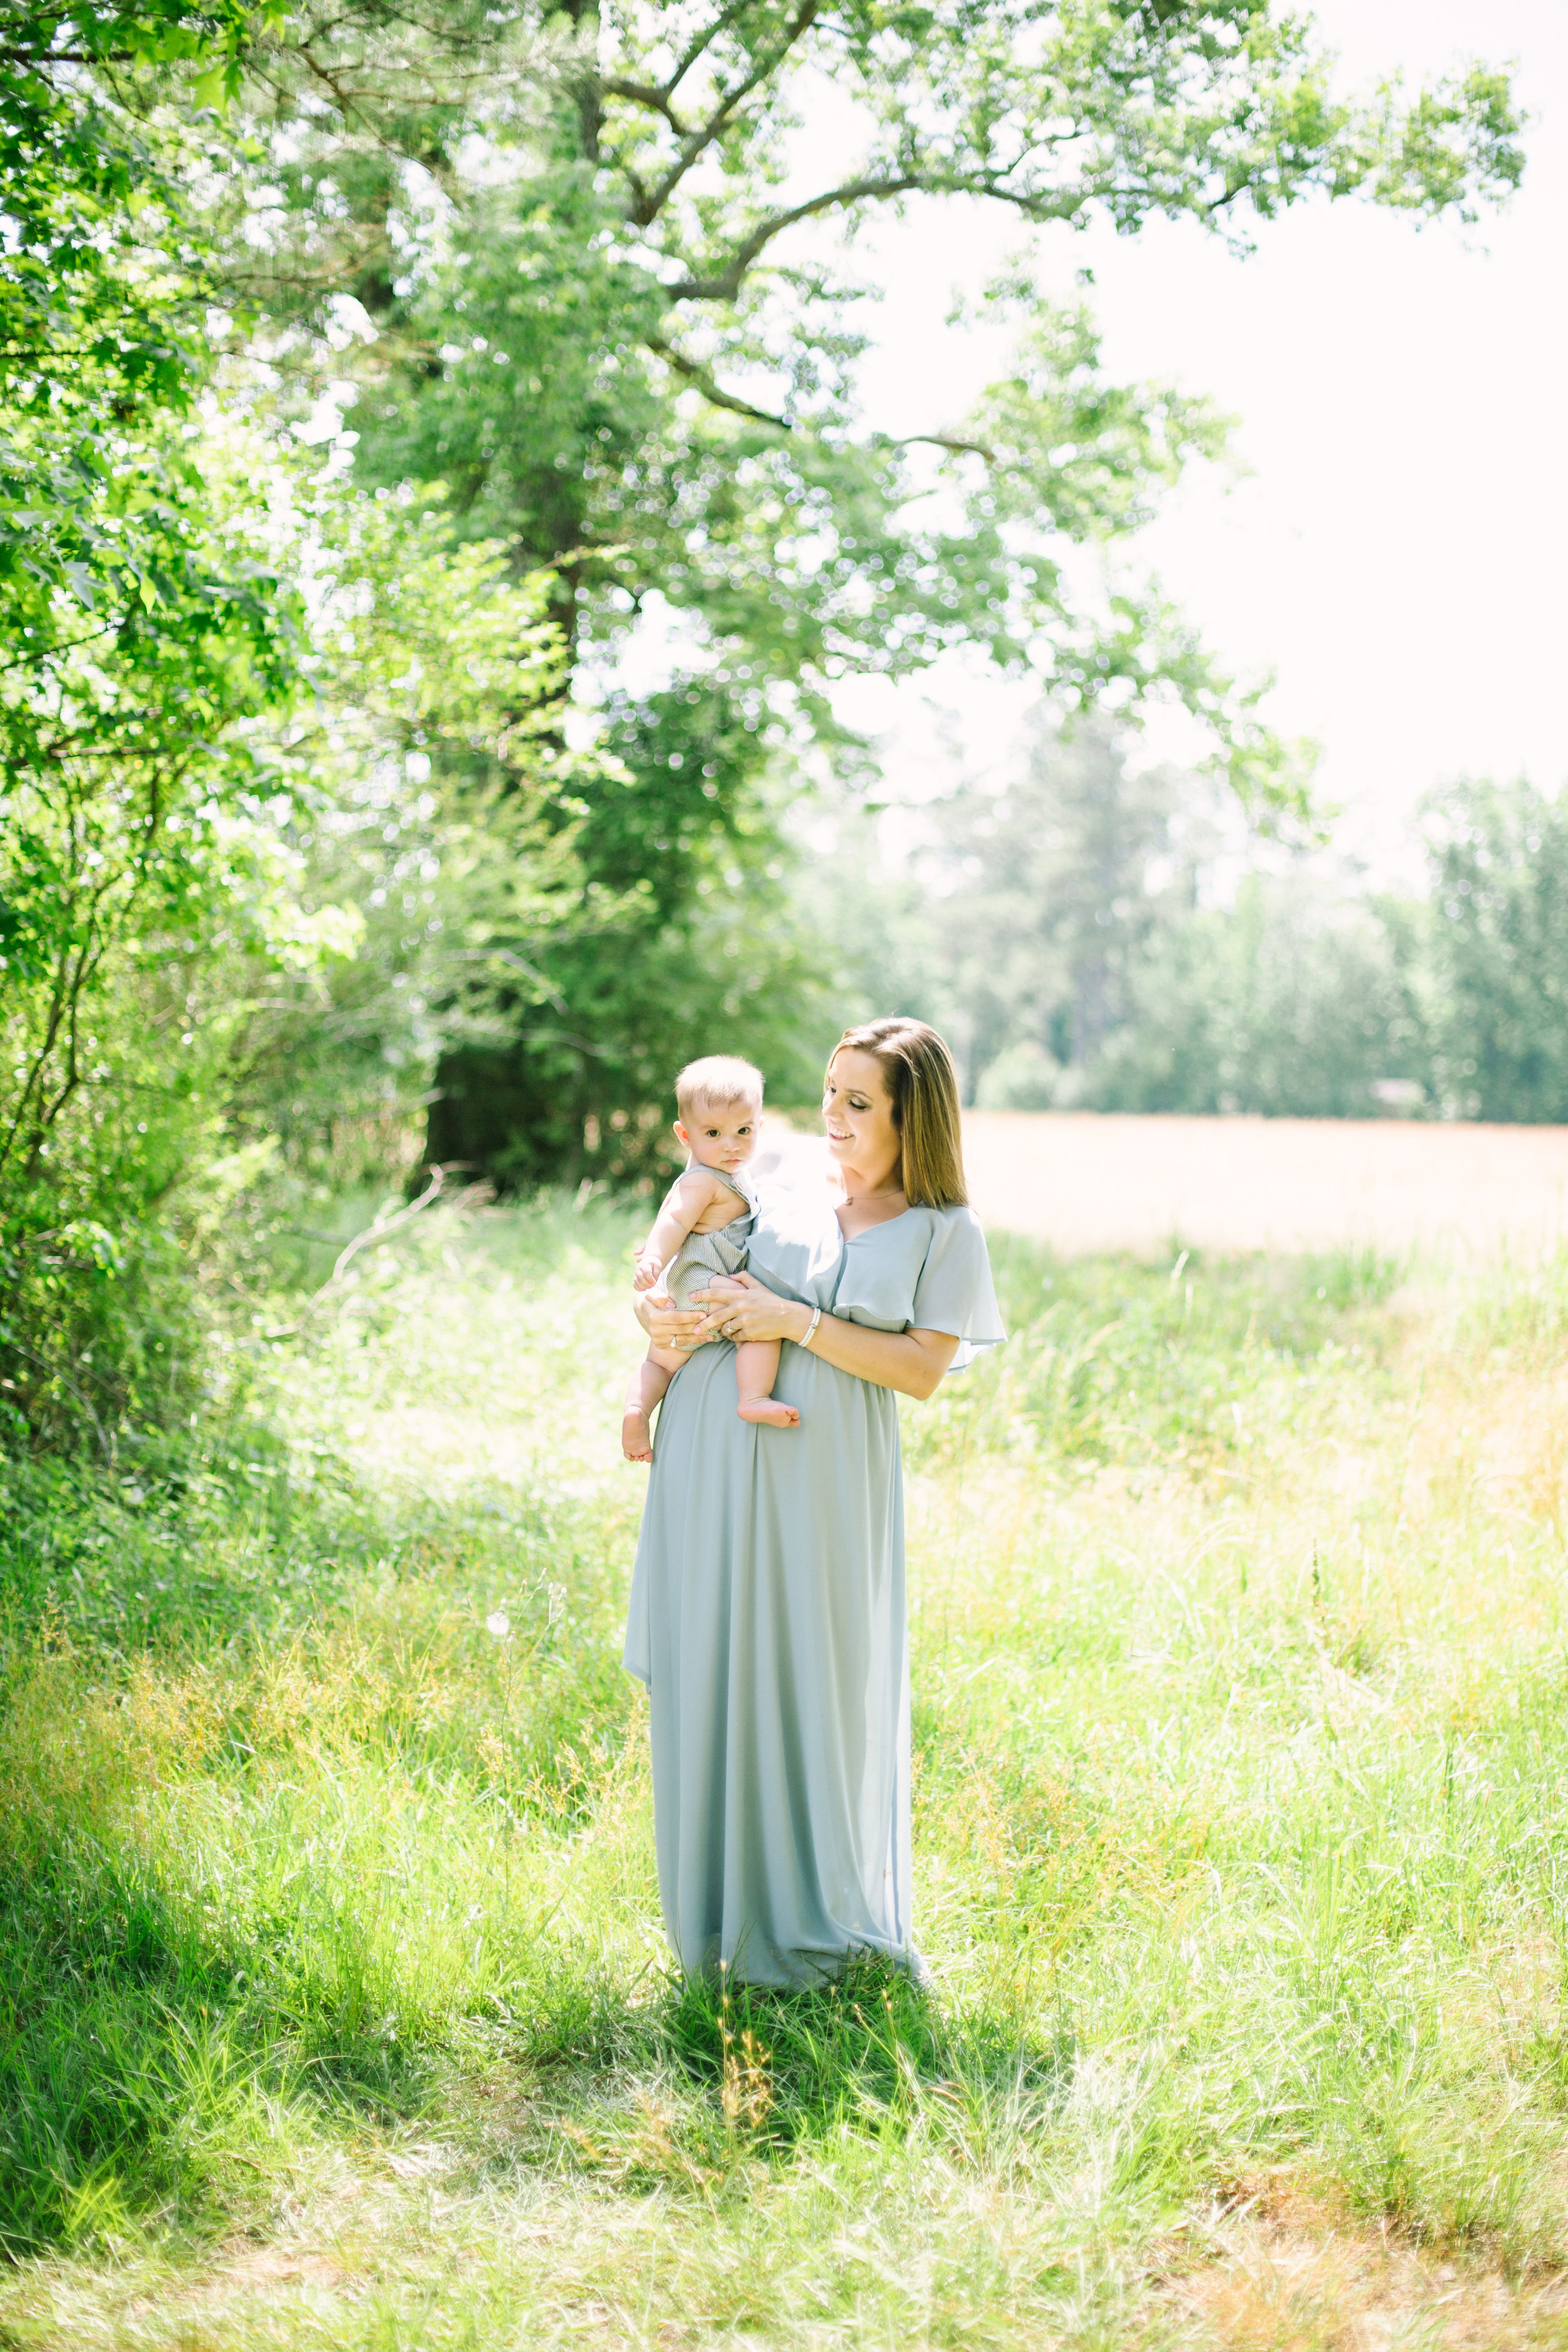 motherhood_giveaway_ashley_poured_out_photography-2.jpg